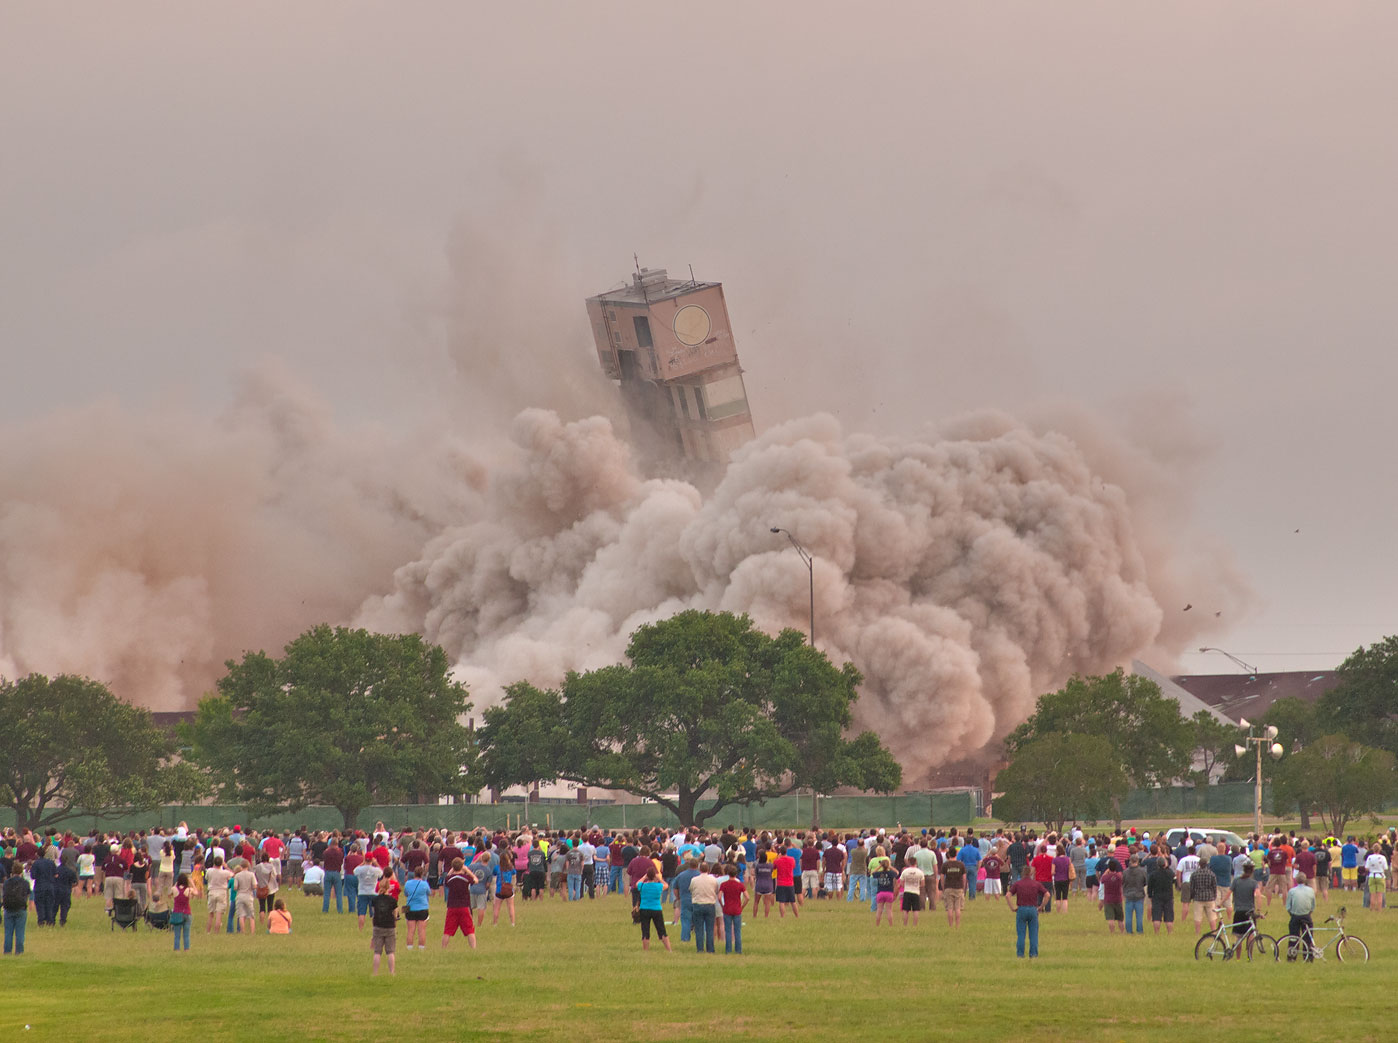 Last moment of implosion of the Plaza Hotel (Ramada Inn). College Station, Texas